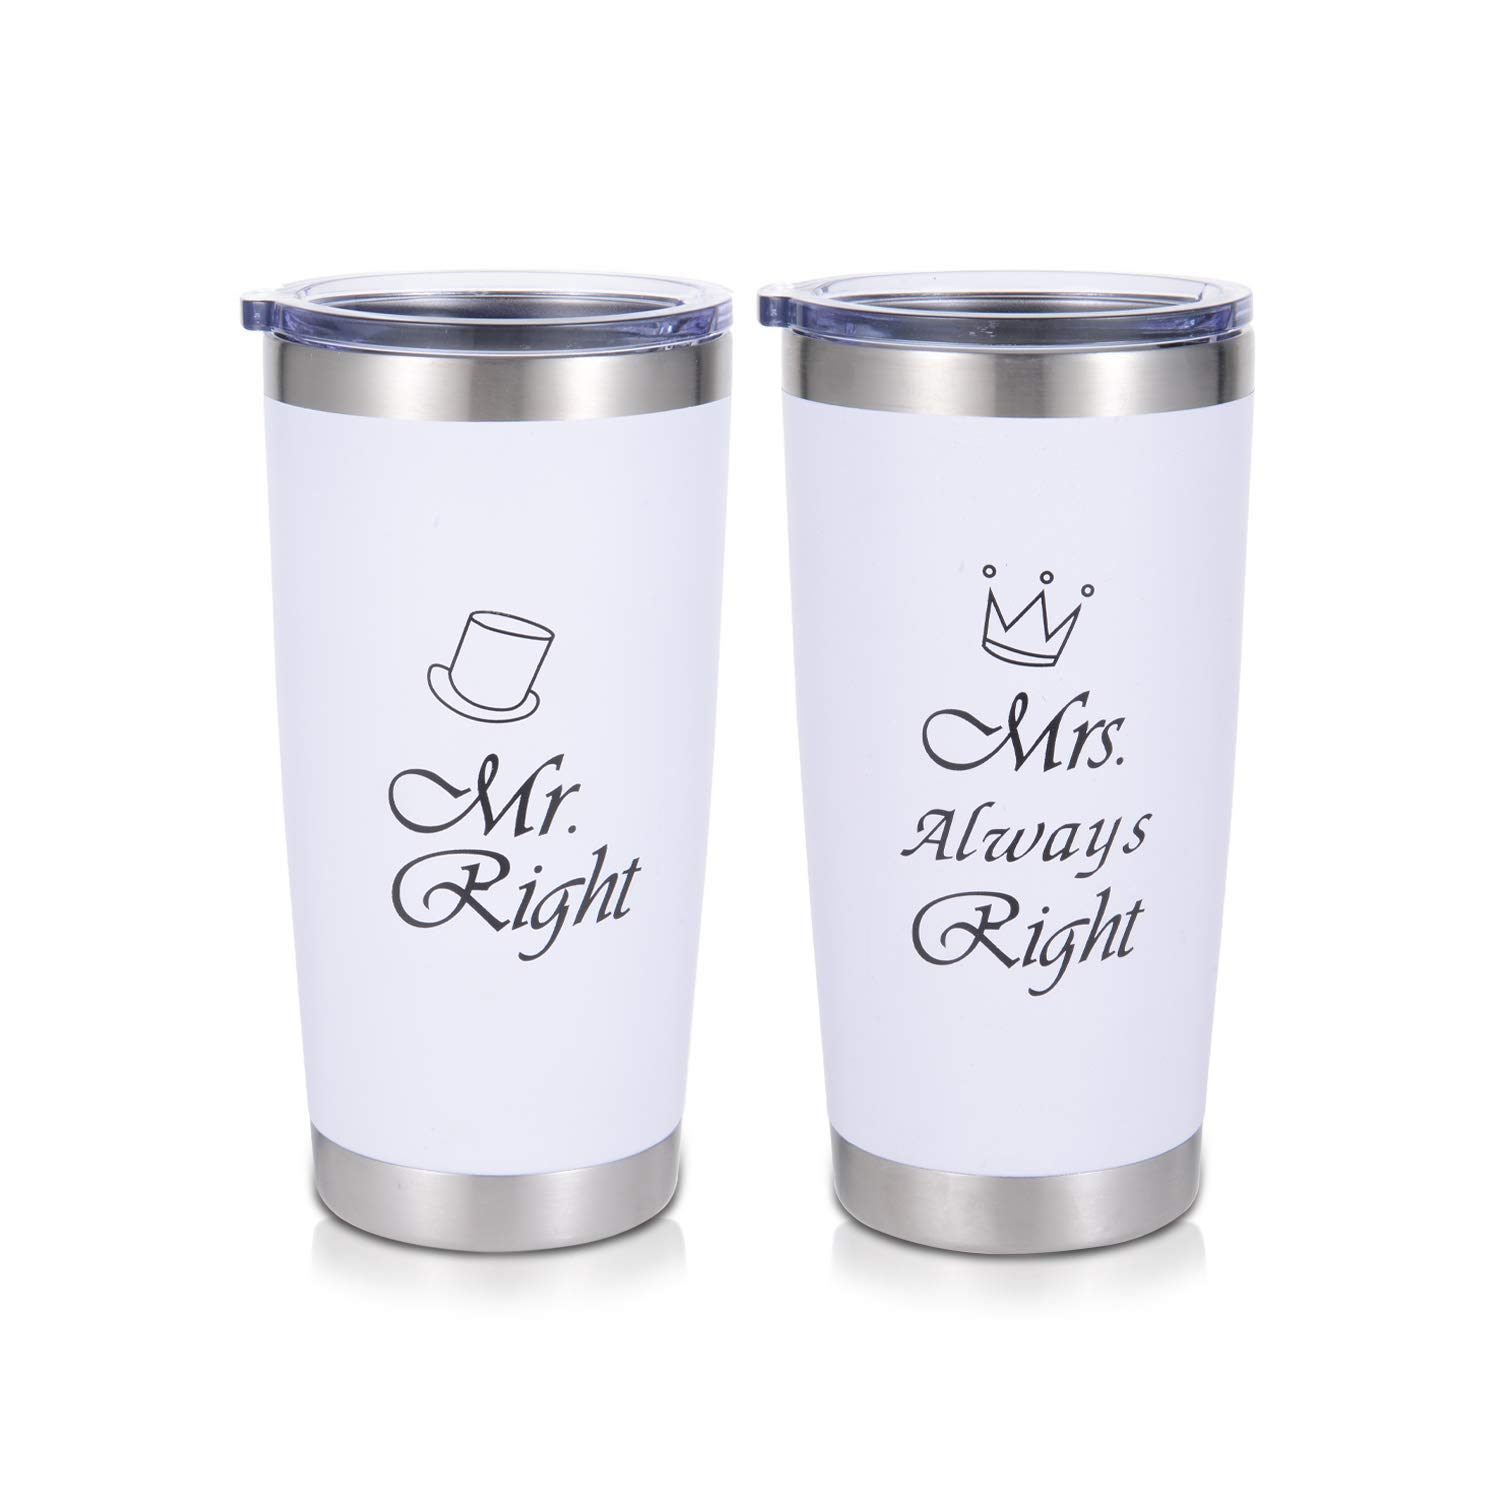 DOMICARE 20oz Stainless Steel Tumbler with Lid, Double Wall Vacuum  Insulated Travel Mug, Durable Powder Coated Insulated Coffee Cup, 2 Pack,  White and